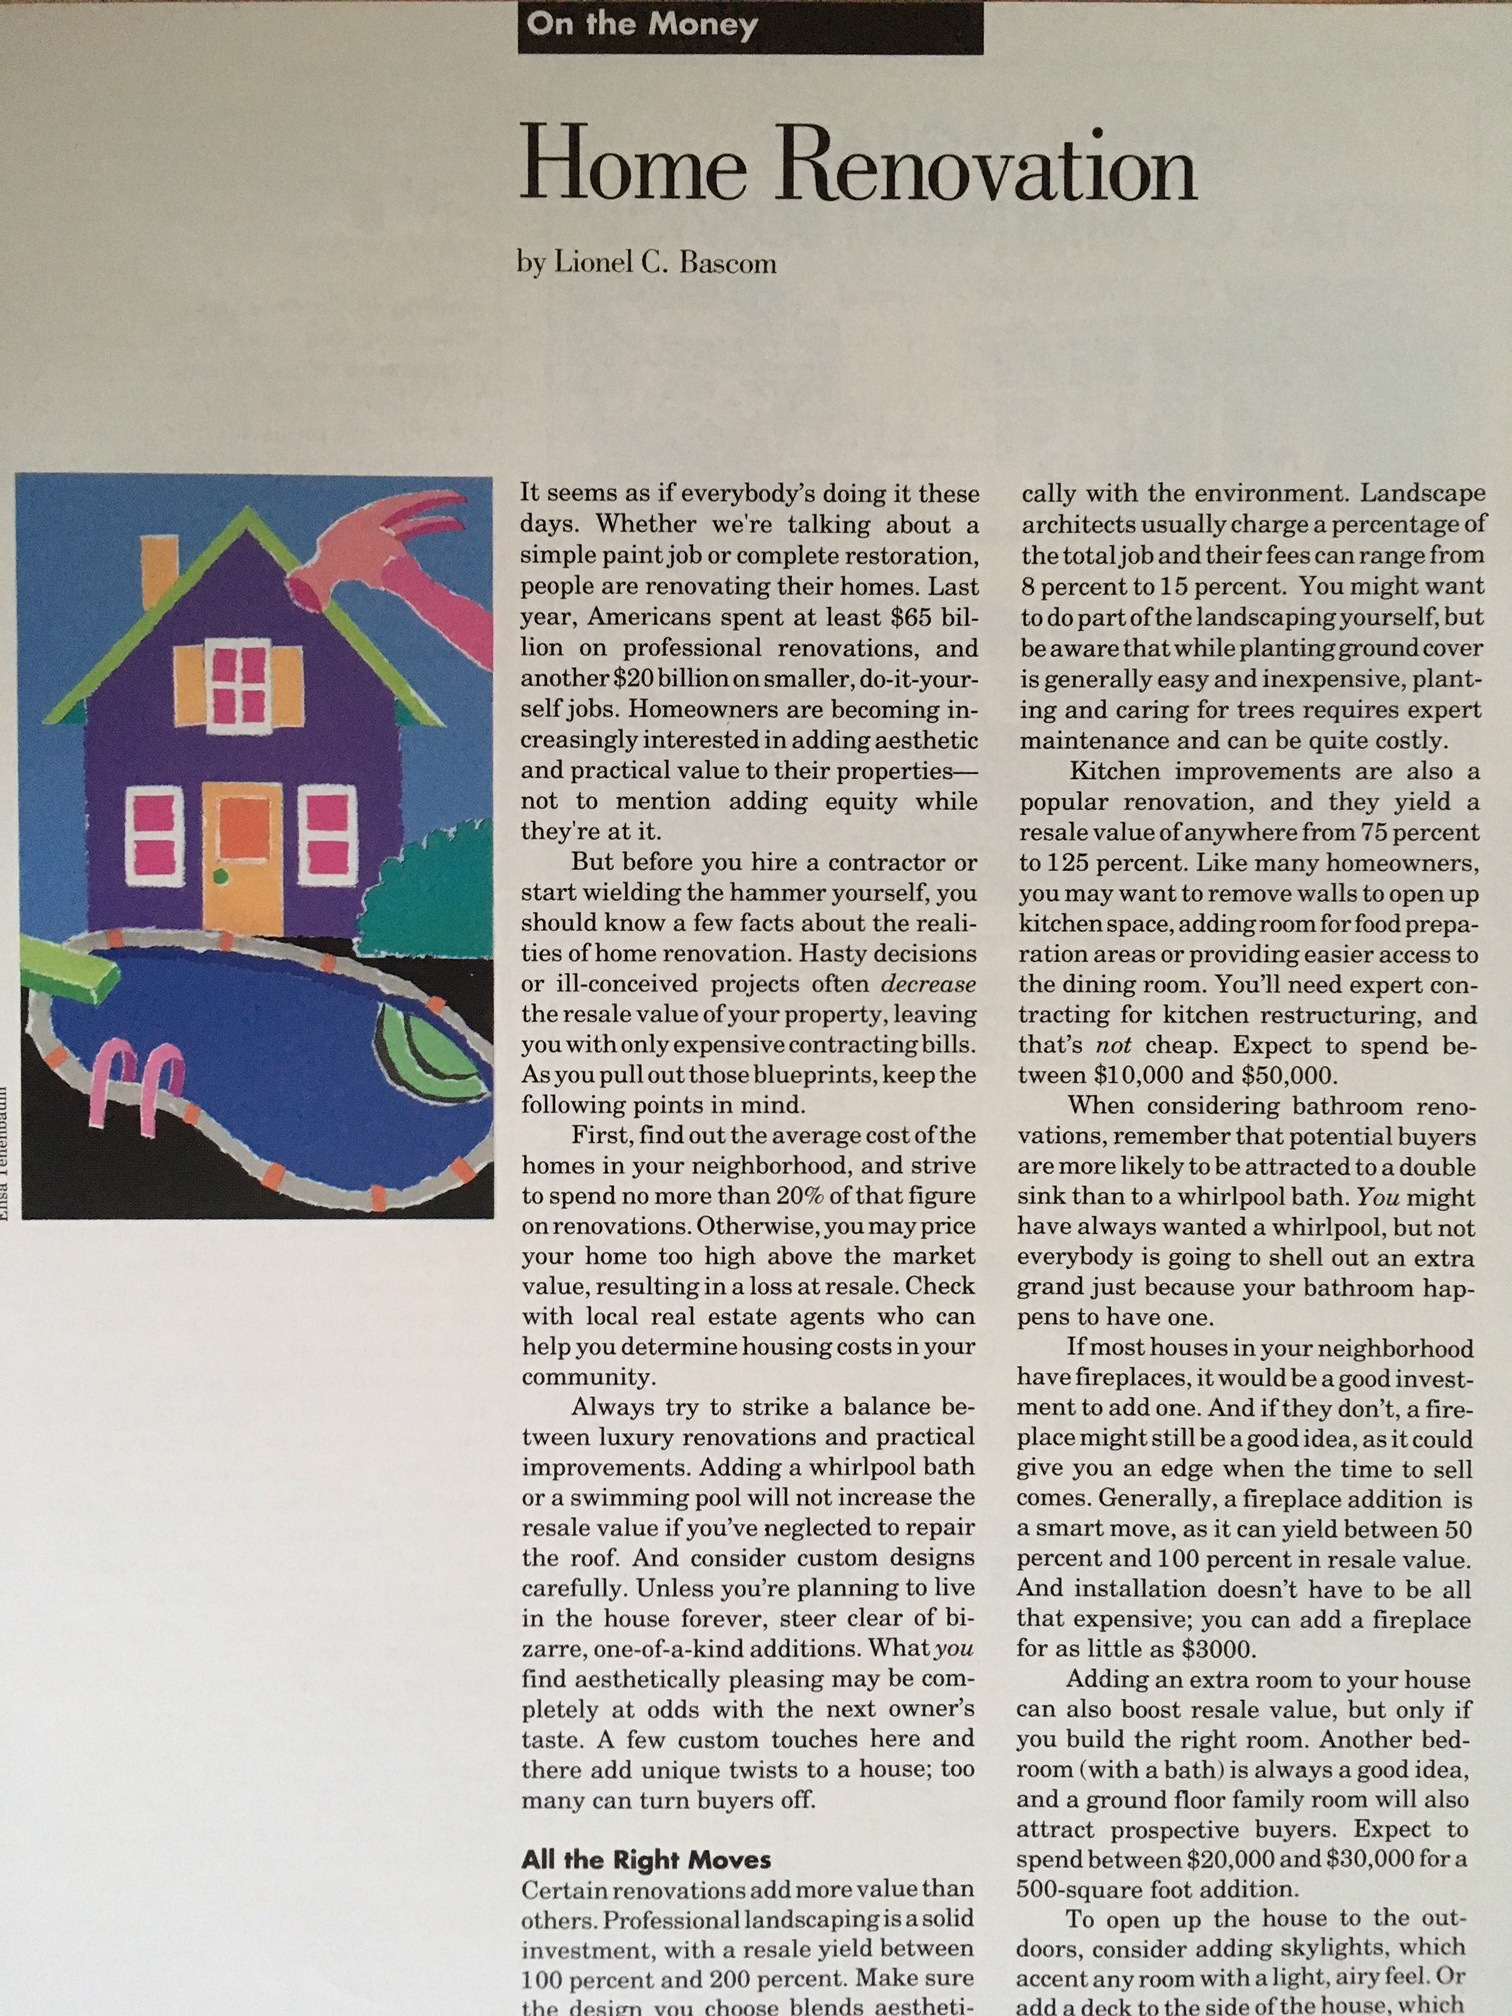 """""""Renovating House Payoff"""" CT Business Weekly"""